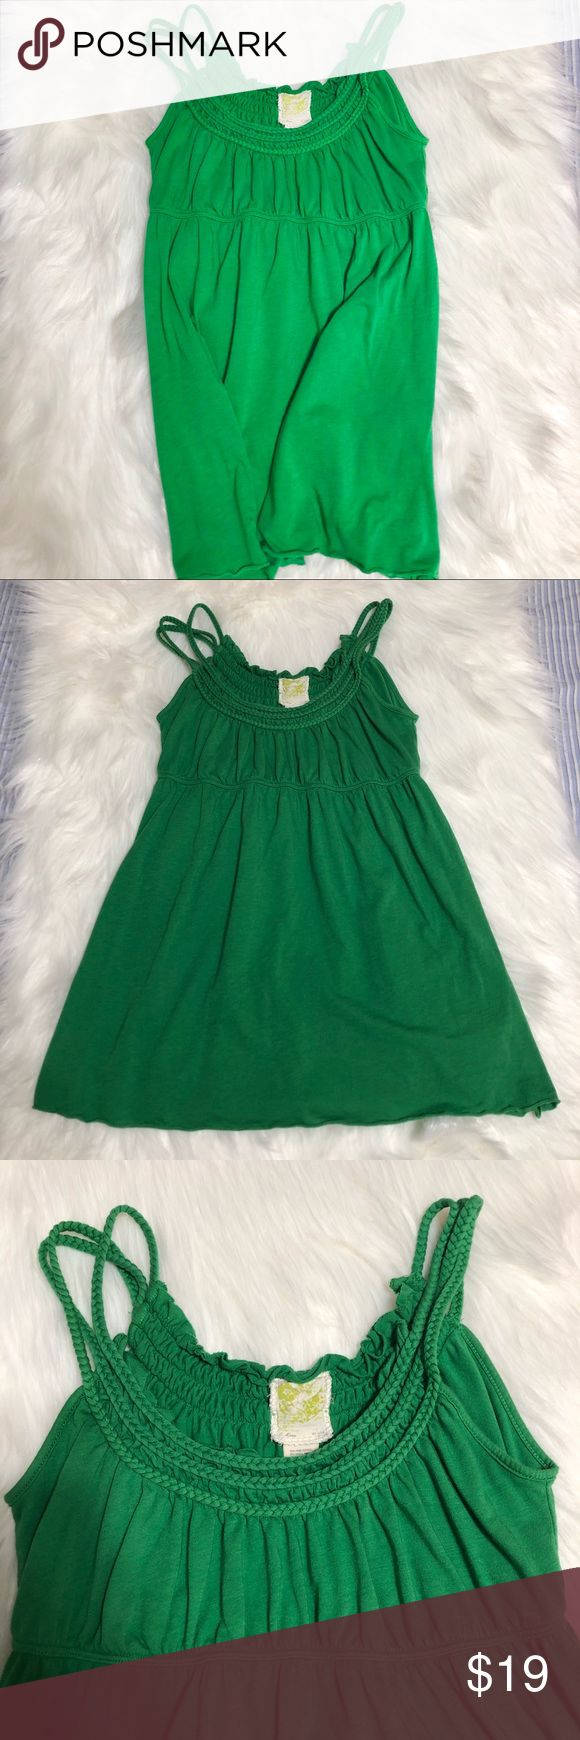 """Anthropologie C. Keer Kelly Green Braided Tank Top Anthropologie C. Keer Kelly Green Braided Tank Top size small. Baby doll style. Braided straps.   Pit to pit: 14"""" Shoulder to hem: 23"""" Anthropologie Tops Tank Tops"""